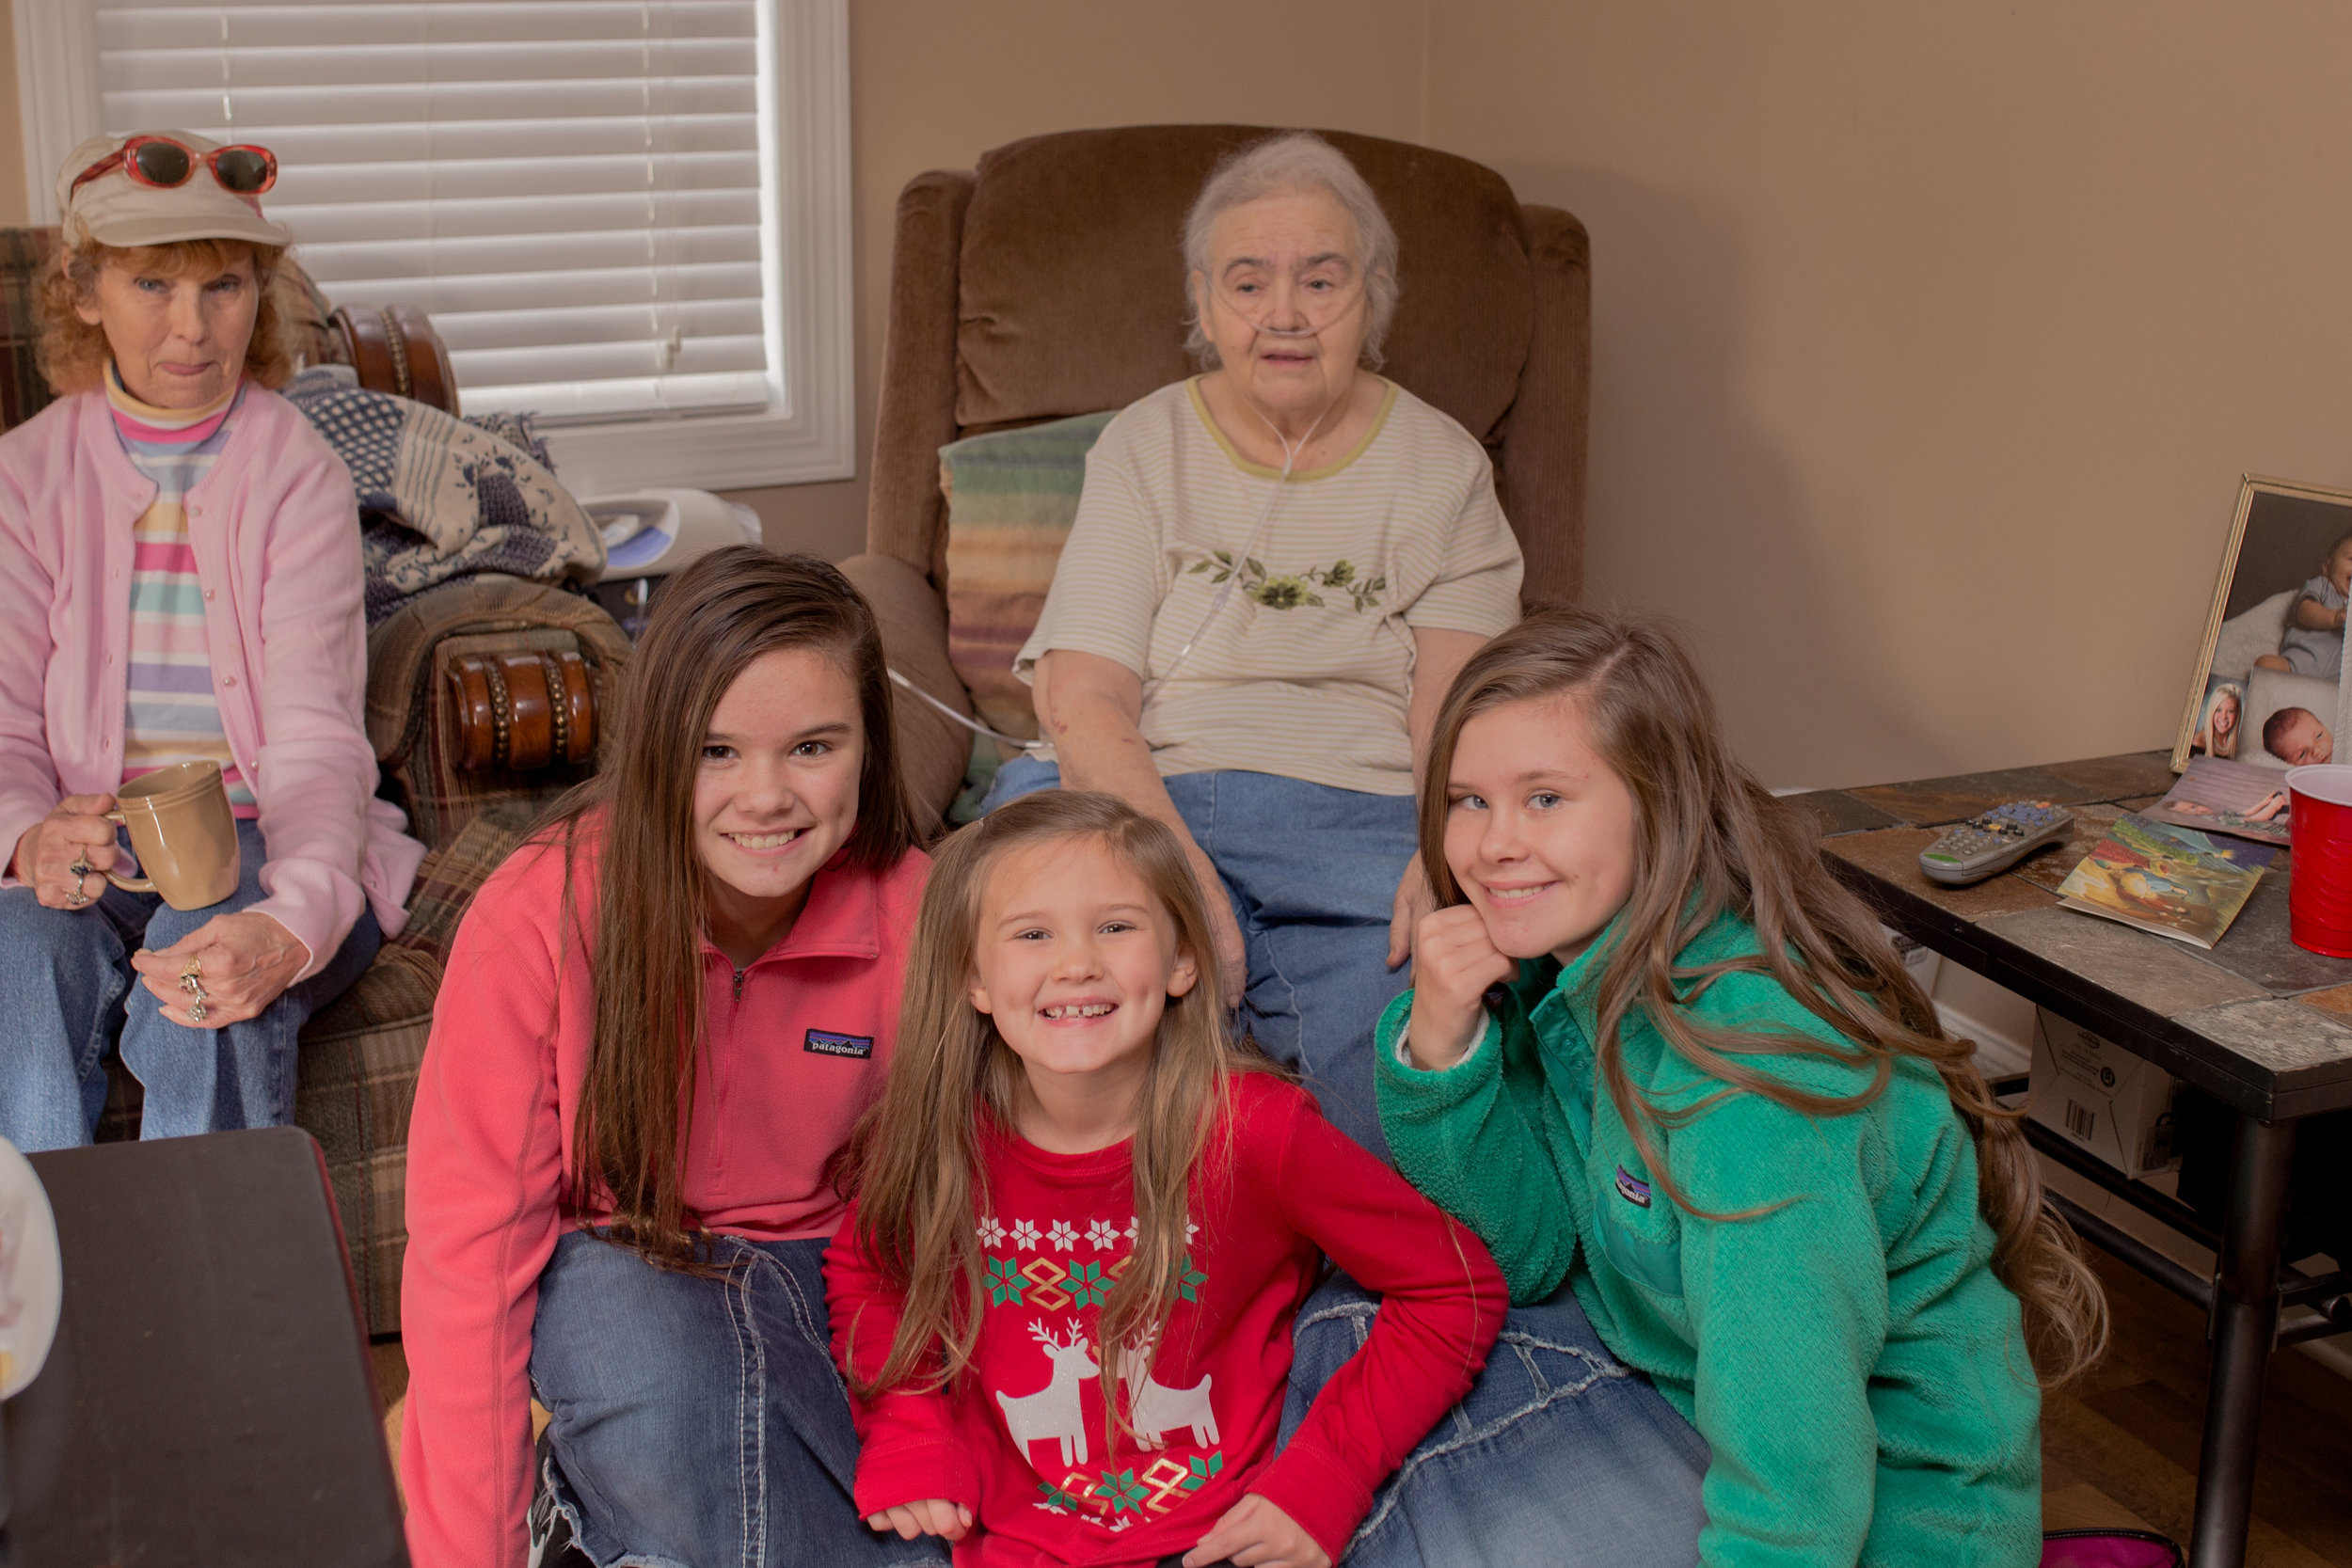 So thankful Nathan's Maw Maw got to be with us this Christmas......She's had a rough year. We love her so much! She's always made sure I could feel how much she loved me and my family! One of the kindest souls you'll ever meet!! We love you so much Maw Maw!!! So thankful my girls get to know her!